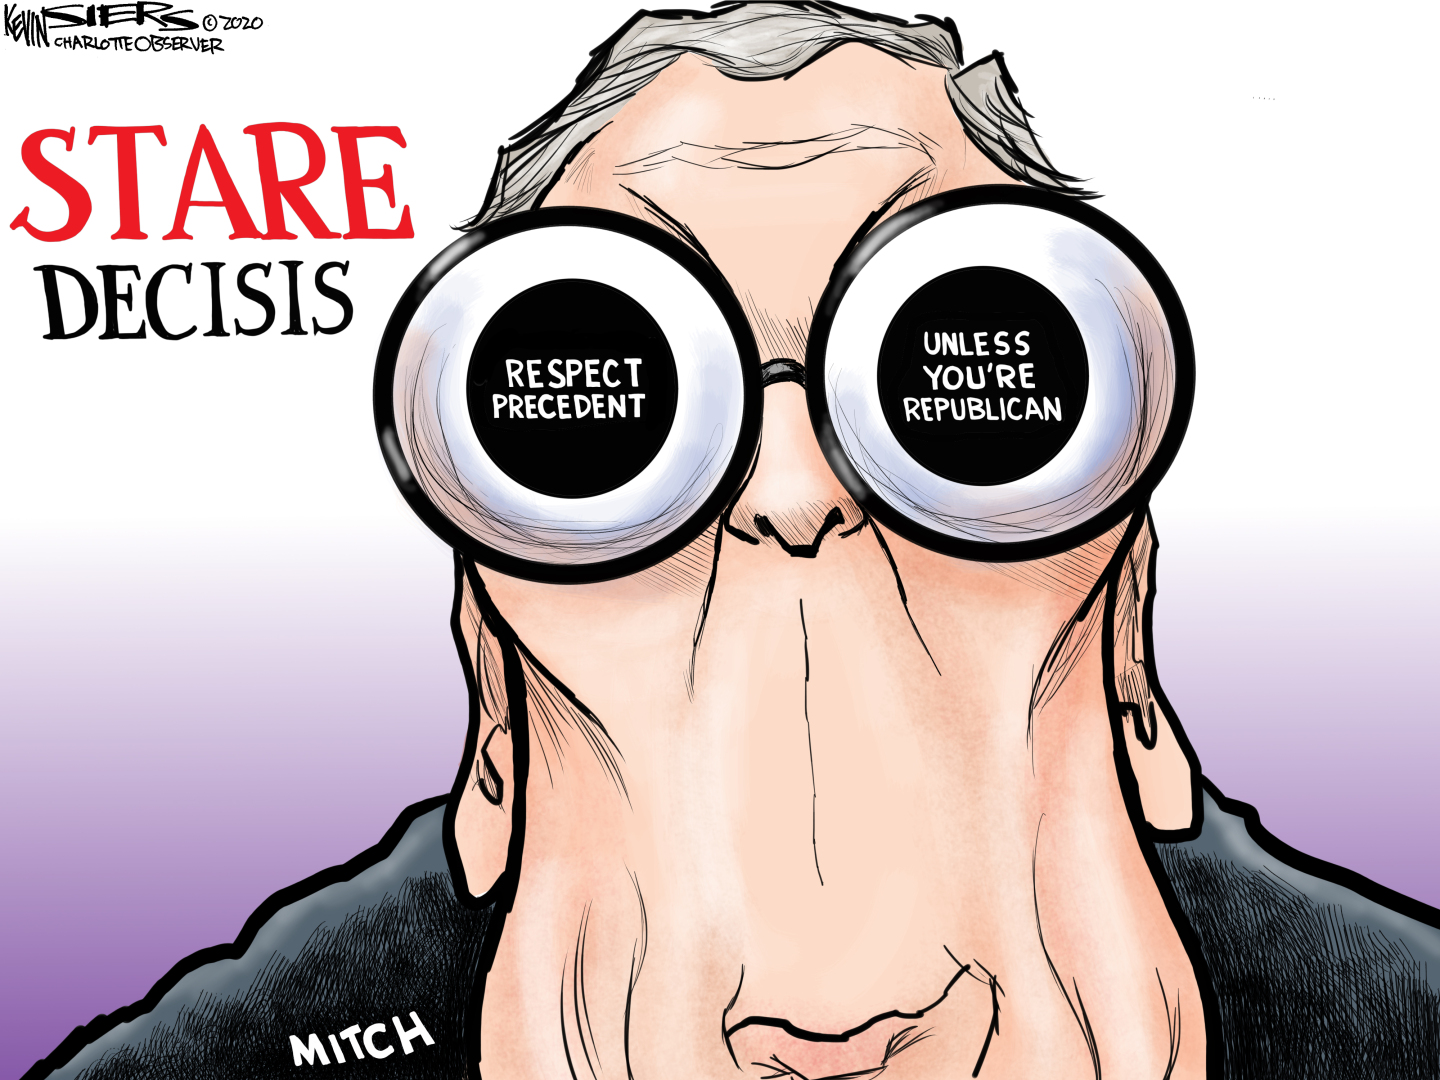 McConnell stacks the courts